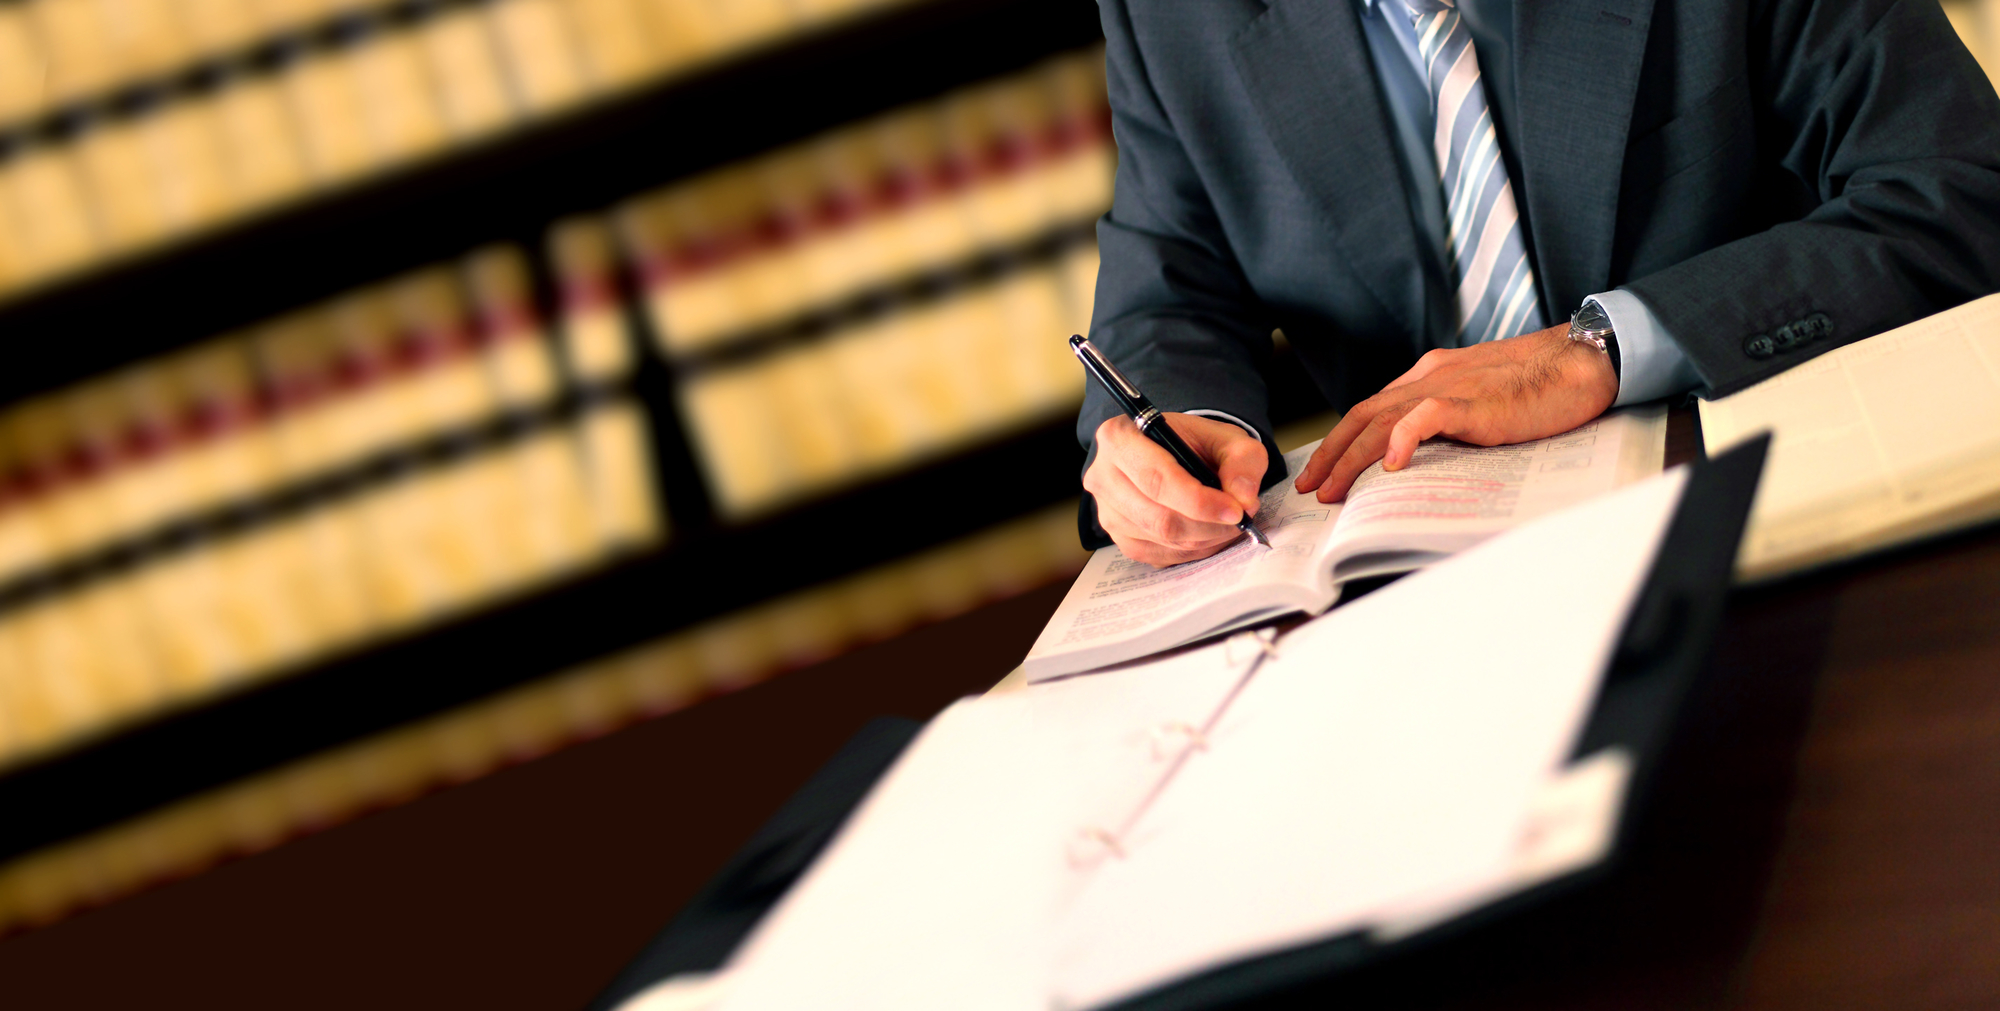 Where can I find a defense lawyer near me?